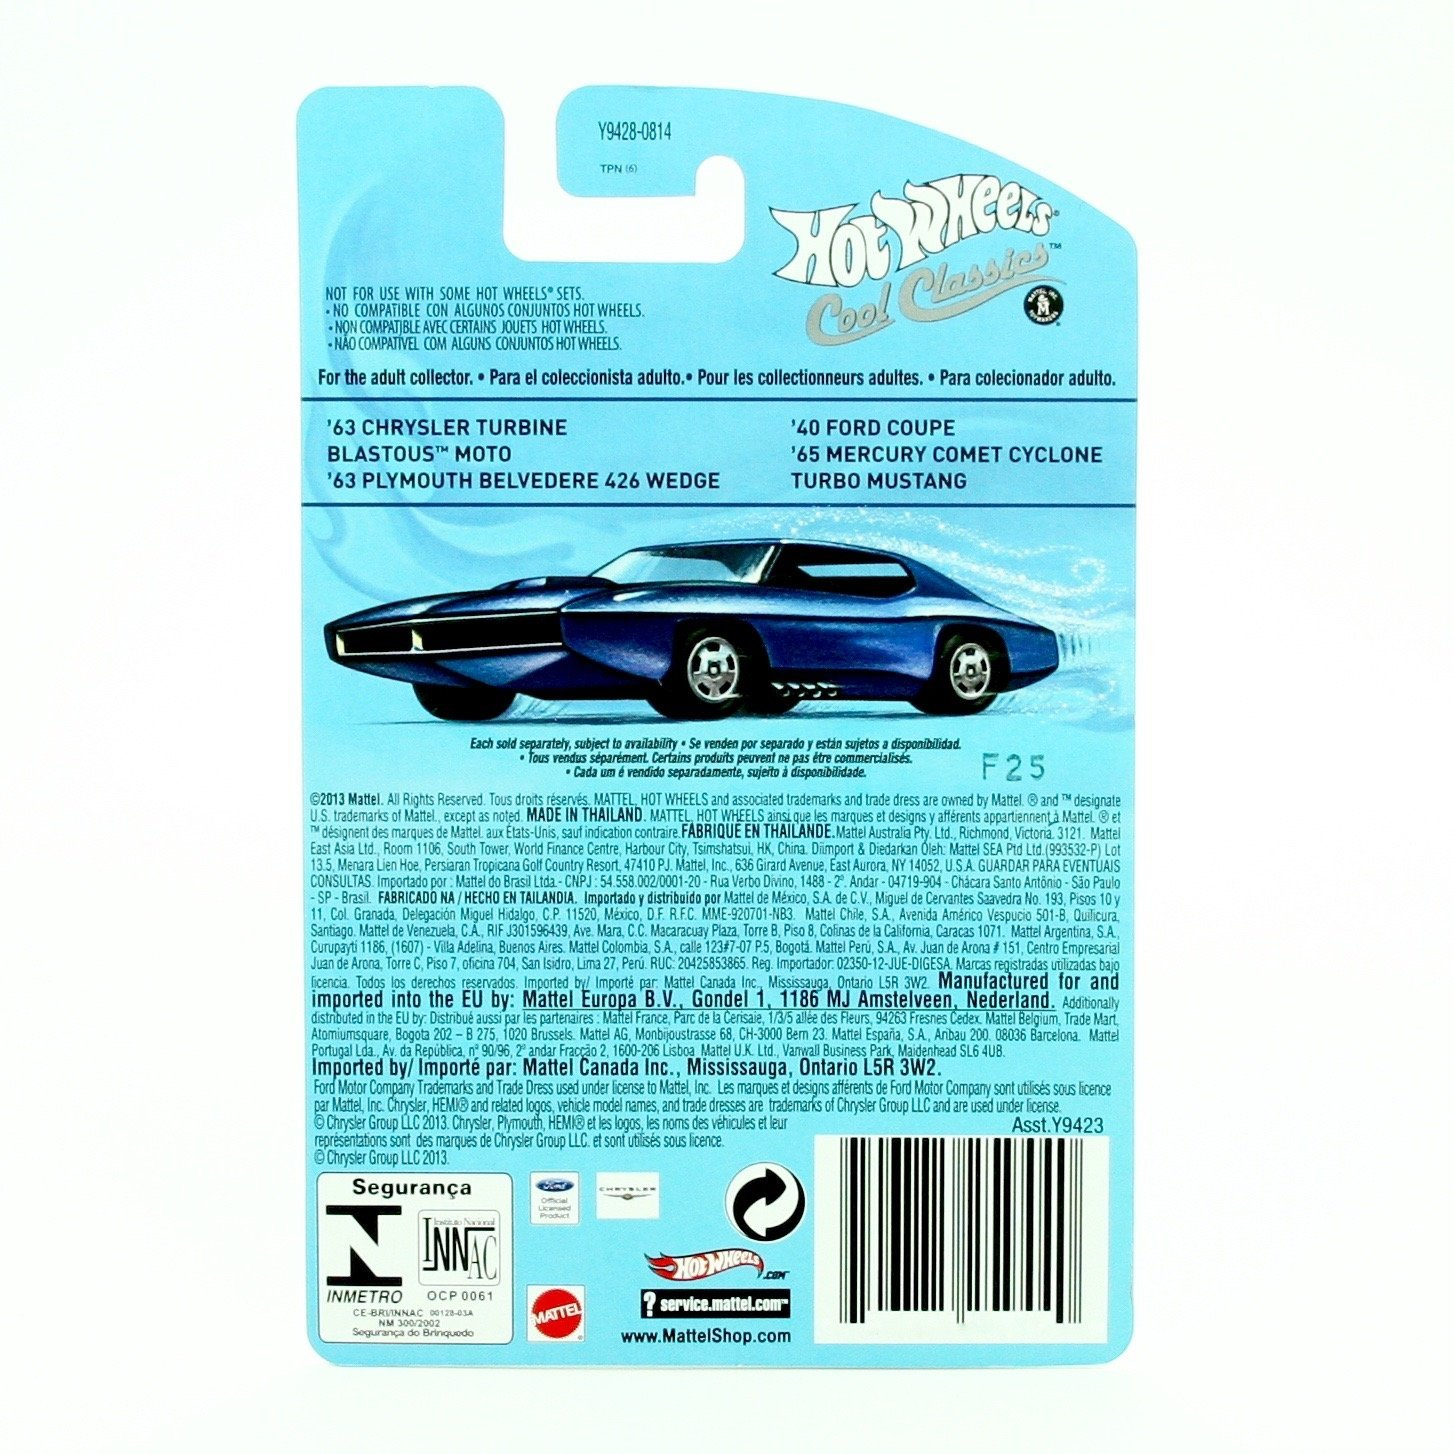 Amazon.com: TURBO MUSTANG 6 of 30 Hot Wheels 2013 SPECTRAFROST COOL CLASSICS Die-Cast Vehicle: Toys & Games